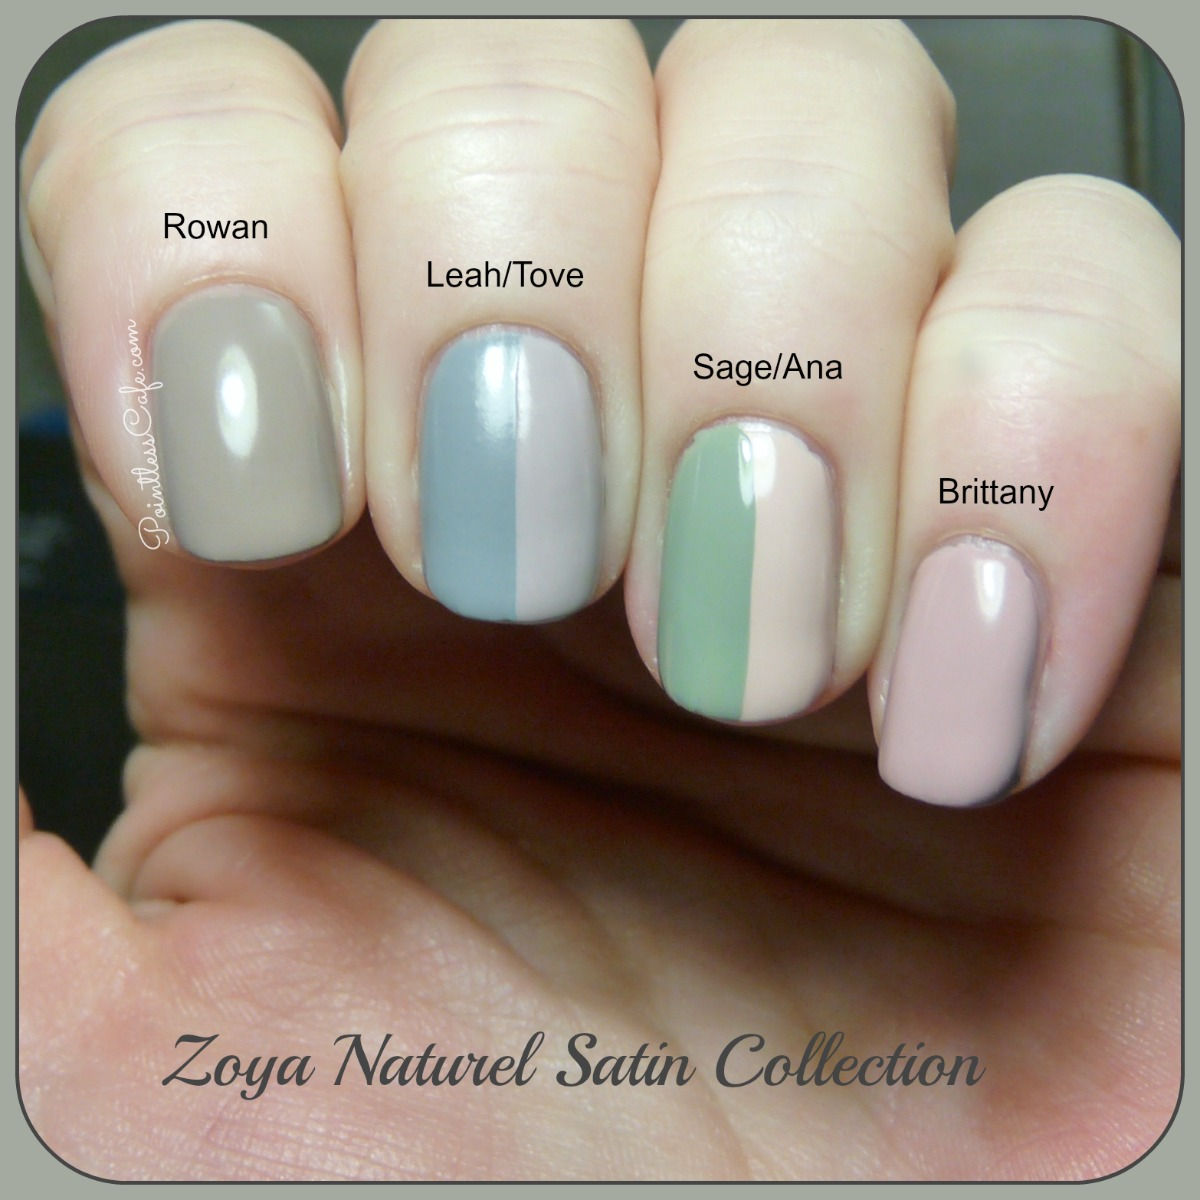 Zoya Naturel Satin Collection 2015 Swatches And Review Pointless